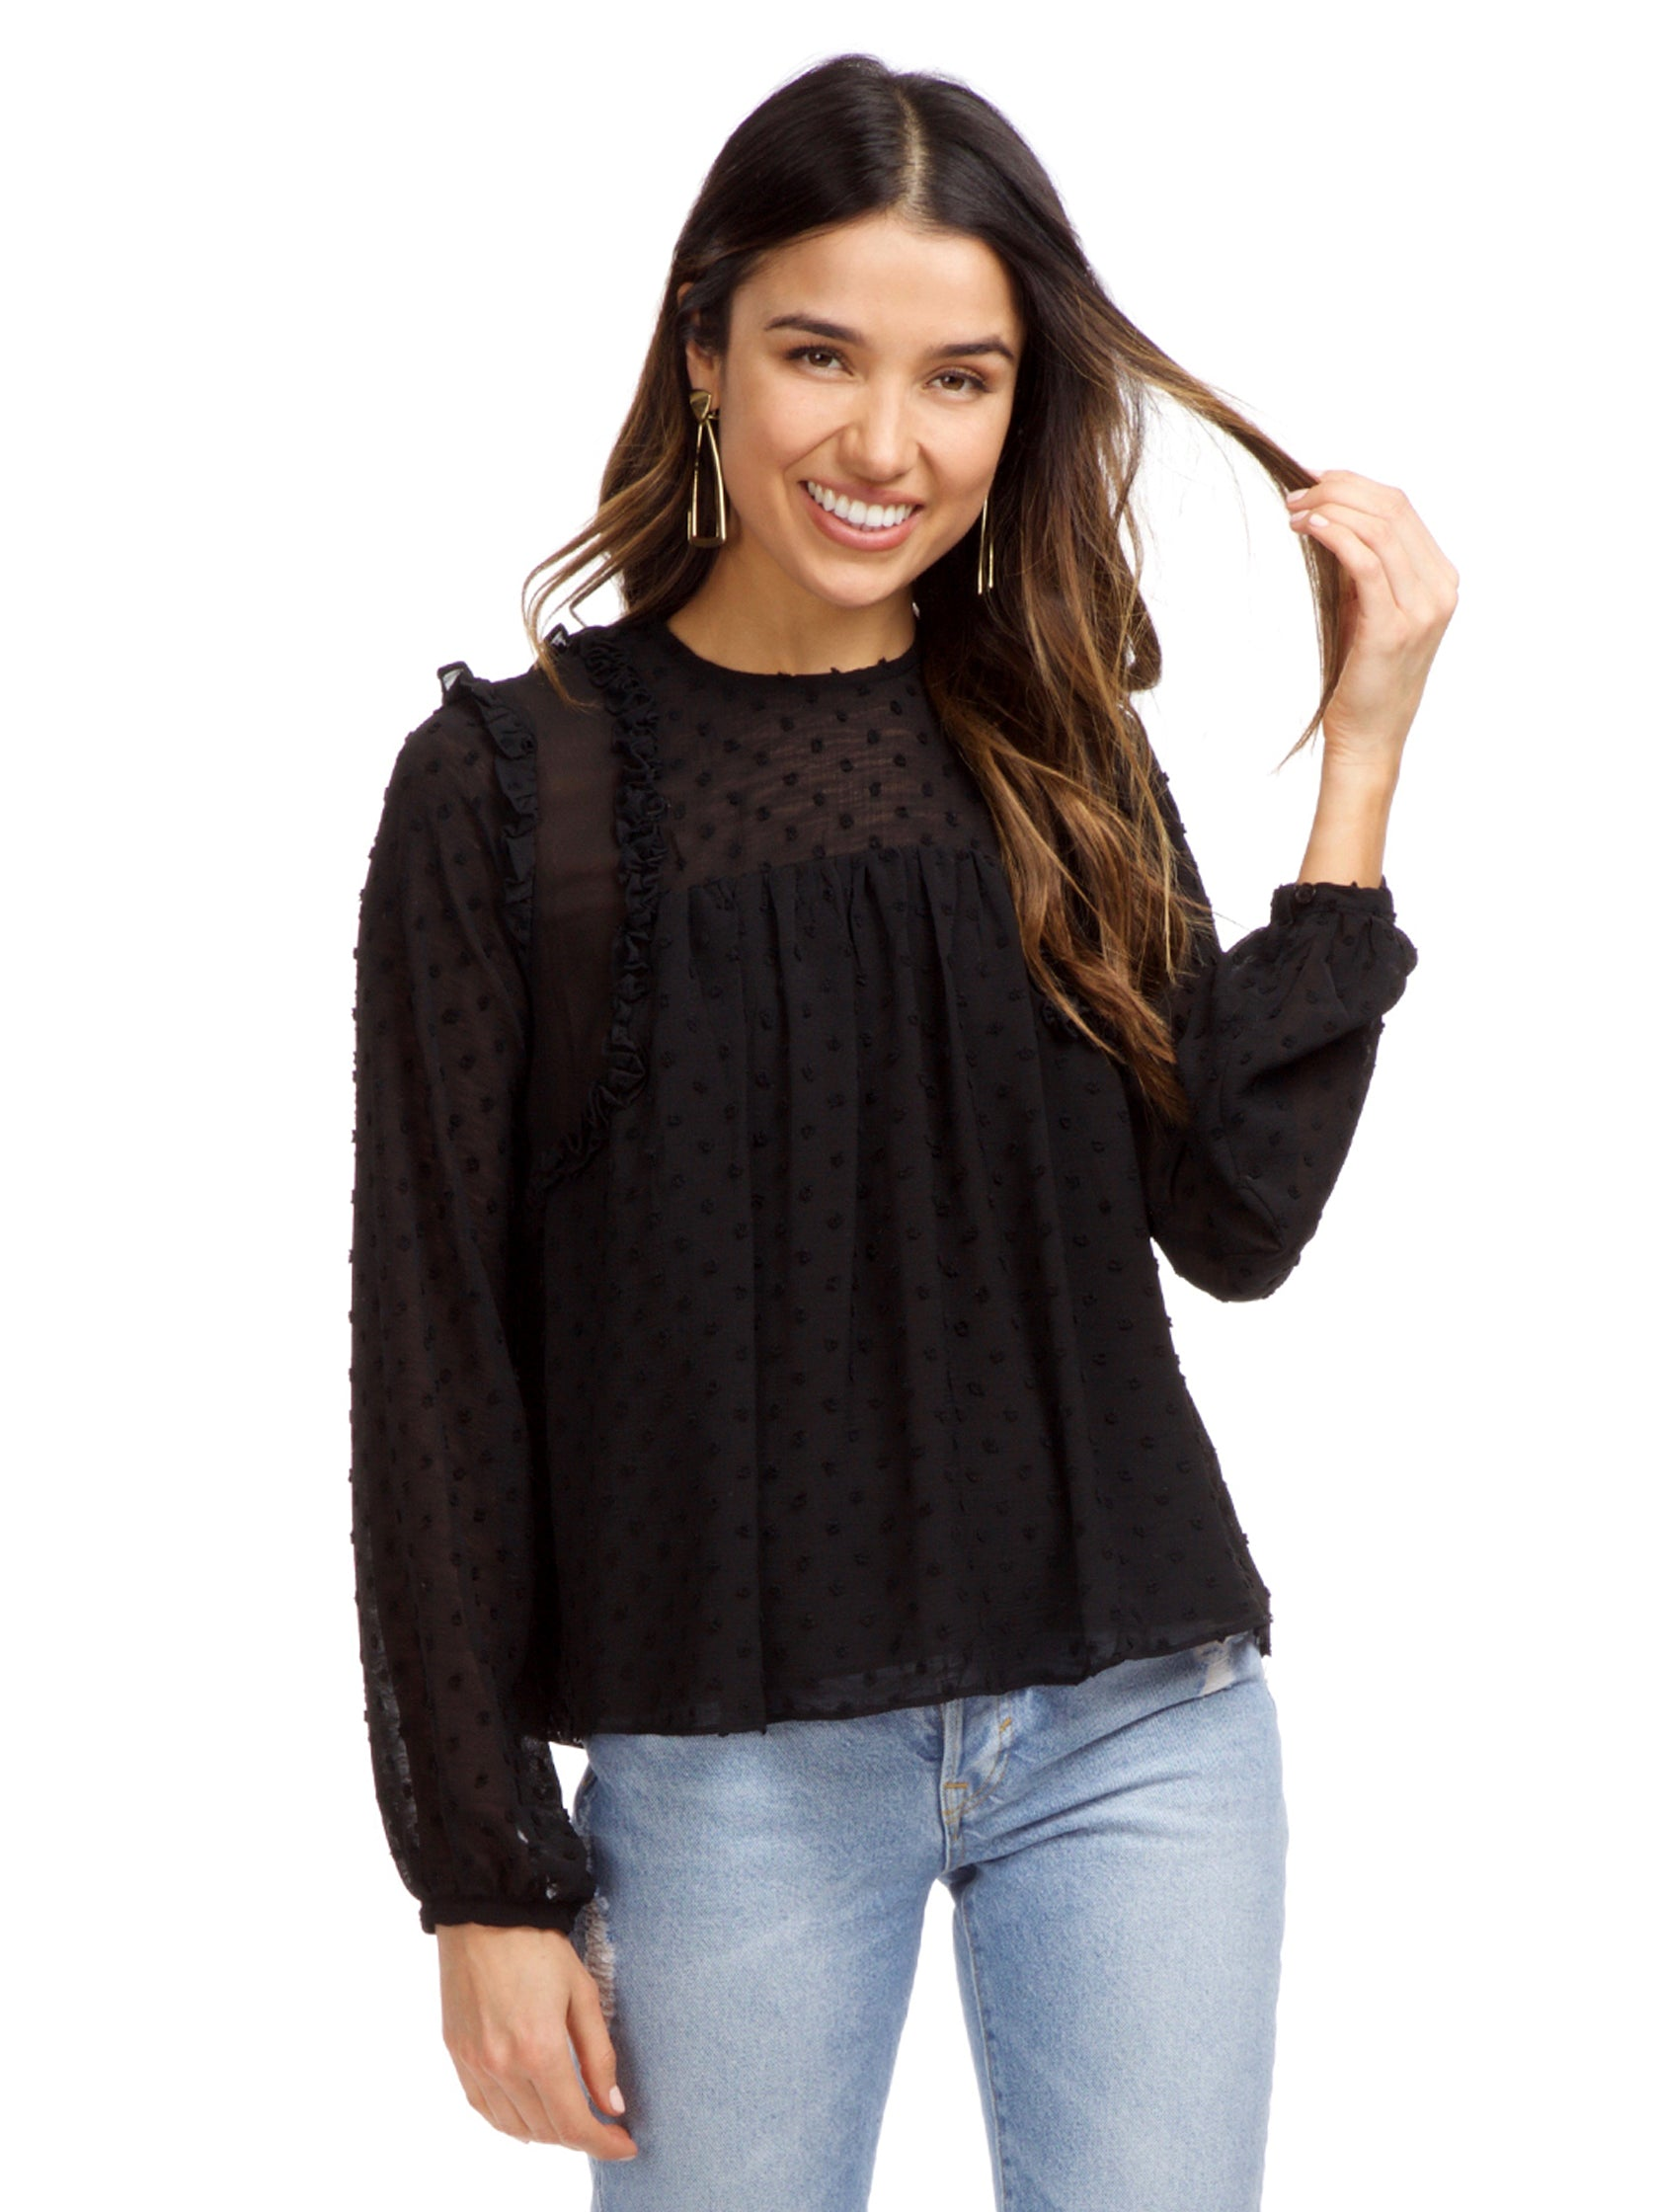 Woman wearing a top rental from Strut & Bolt called Dotted Ruffle Long Sleeve Top